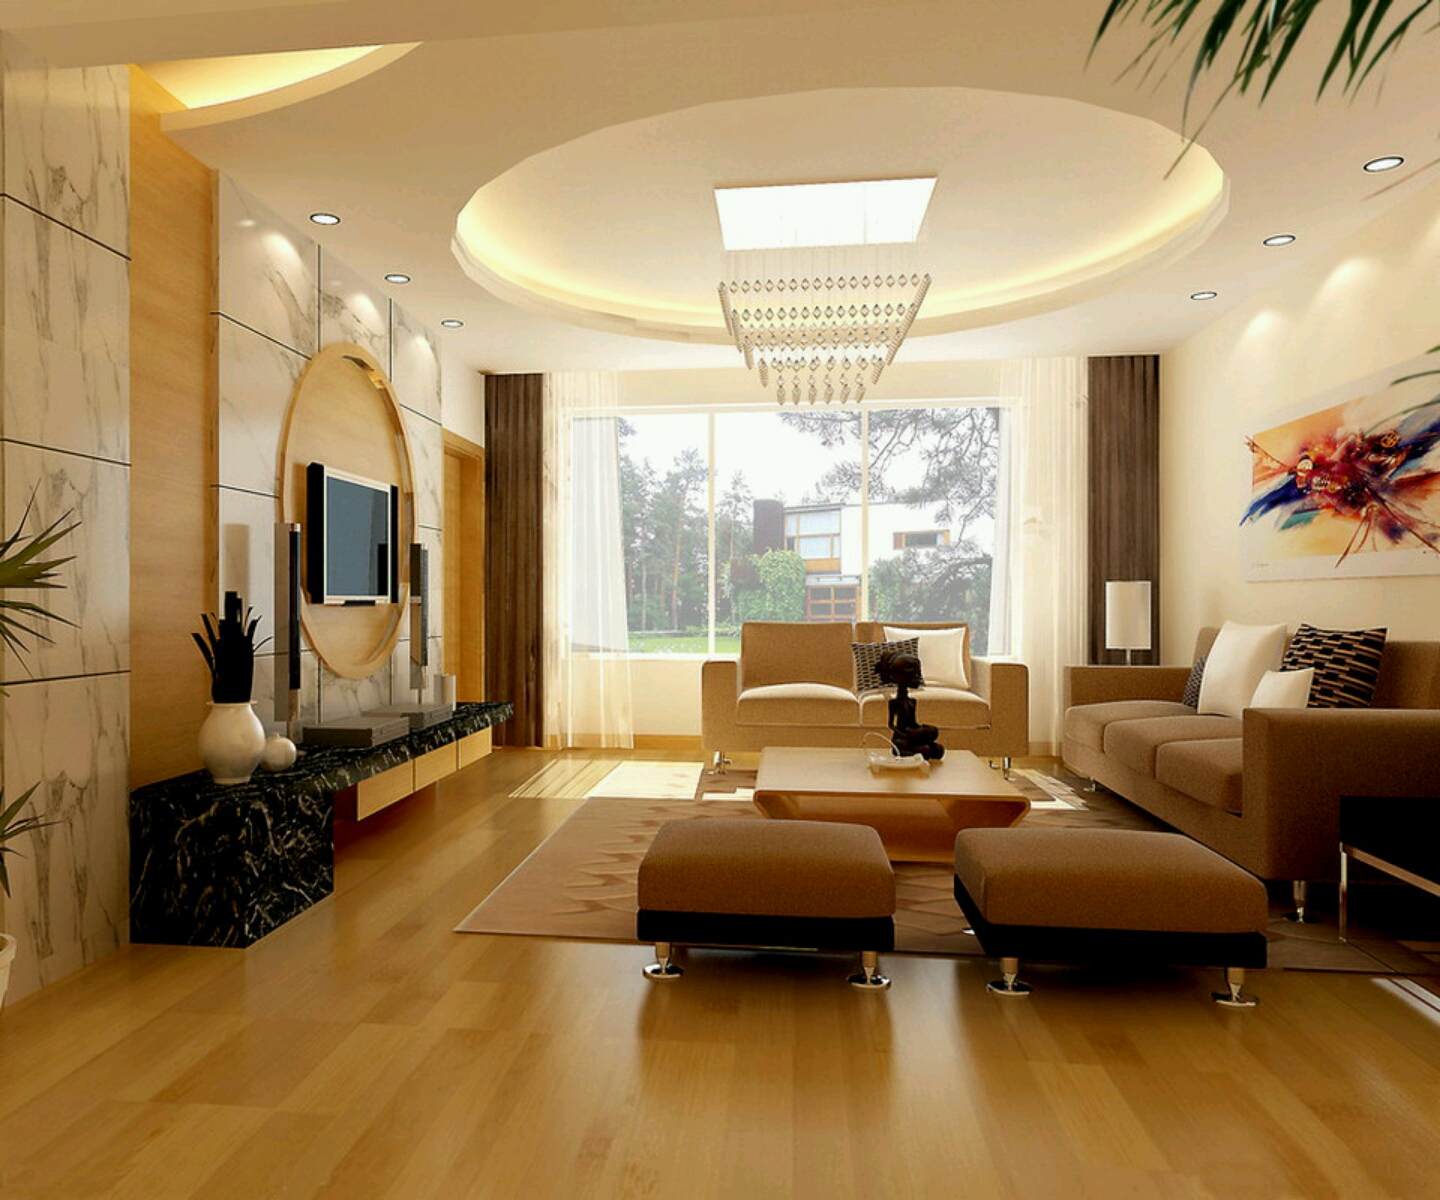 Modern interior decoration living rooms ceiling designs for Living room space ideas